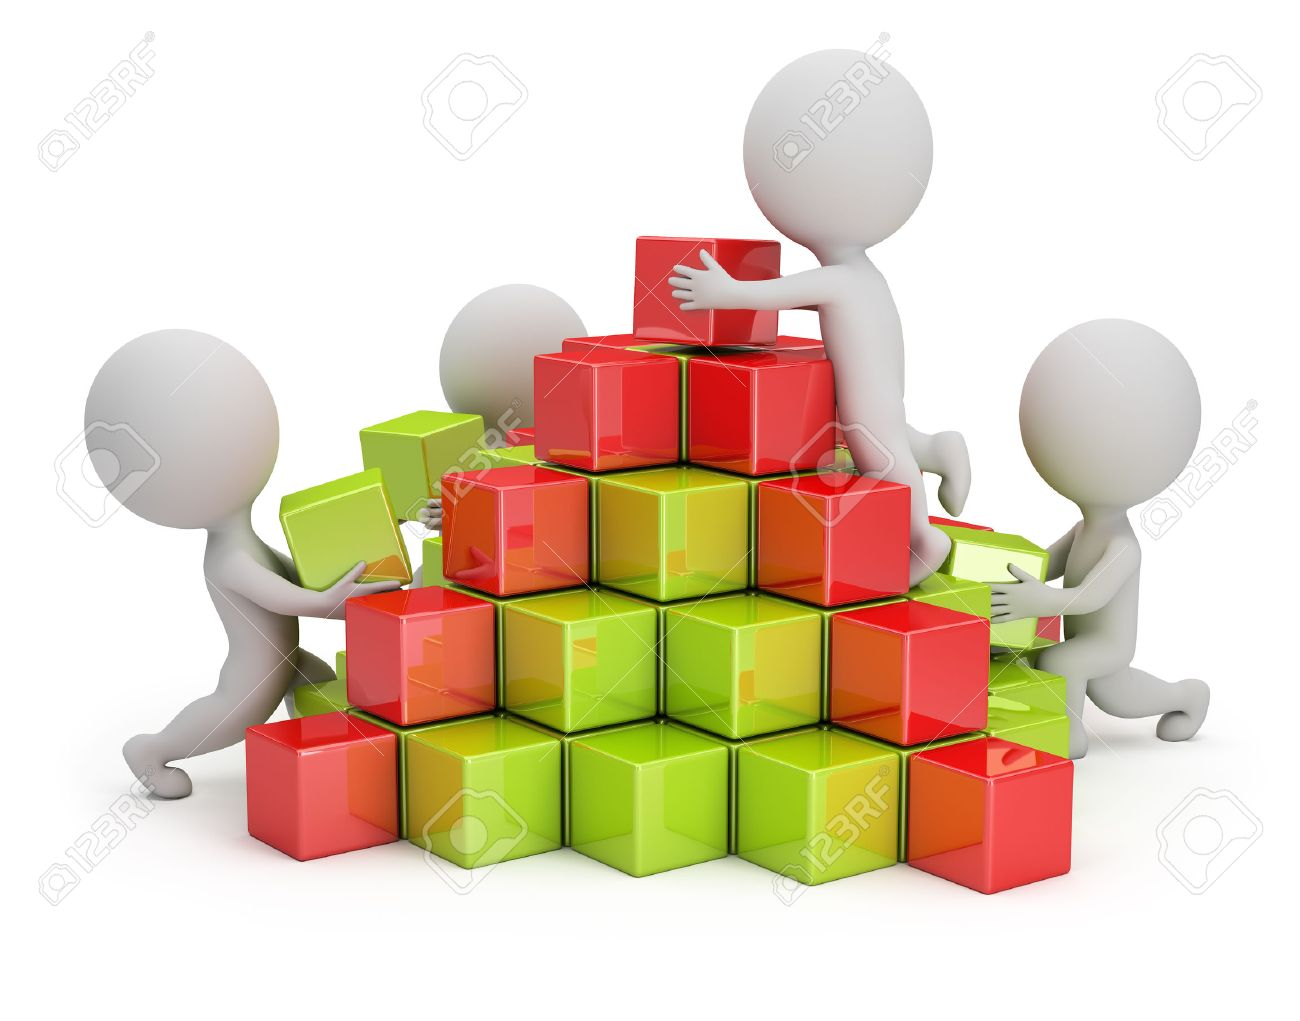 3d small people are building a pyramid of colored cubes  3d image  White background Stock Photo - 26583776